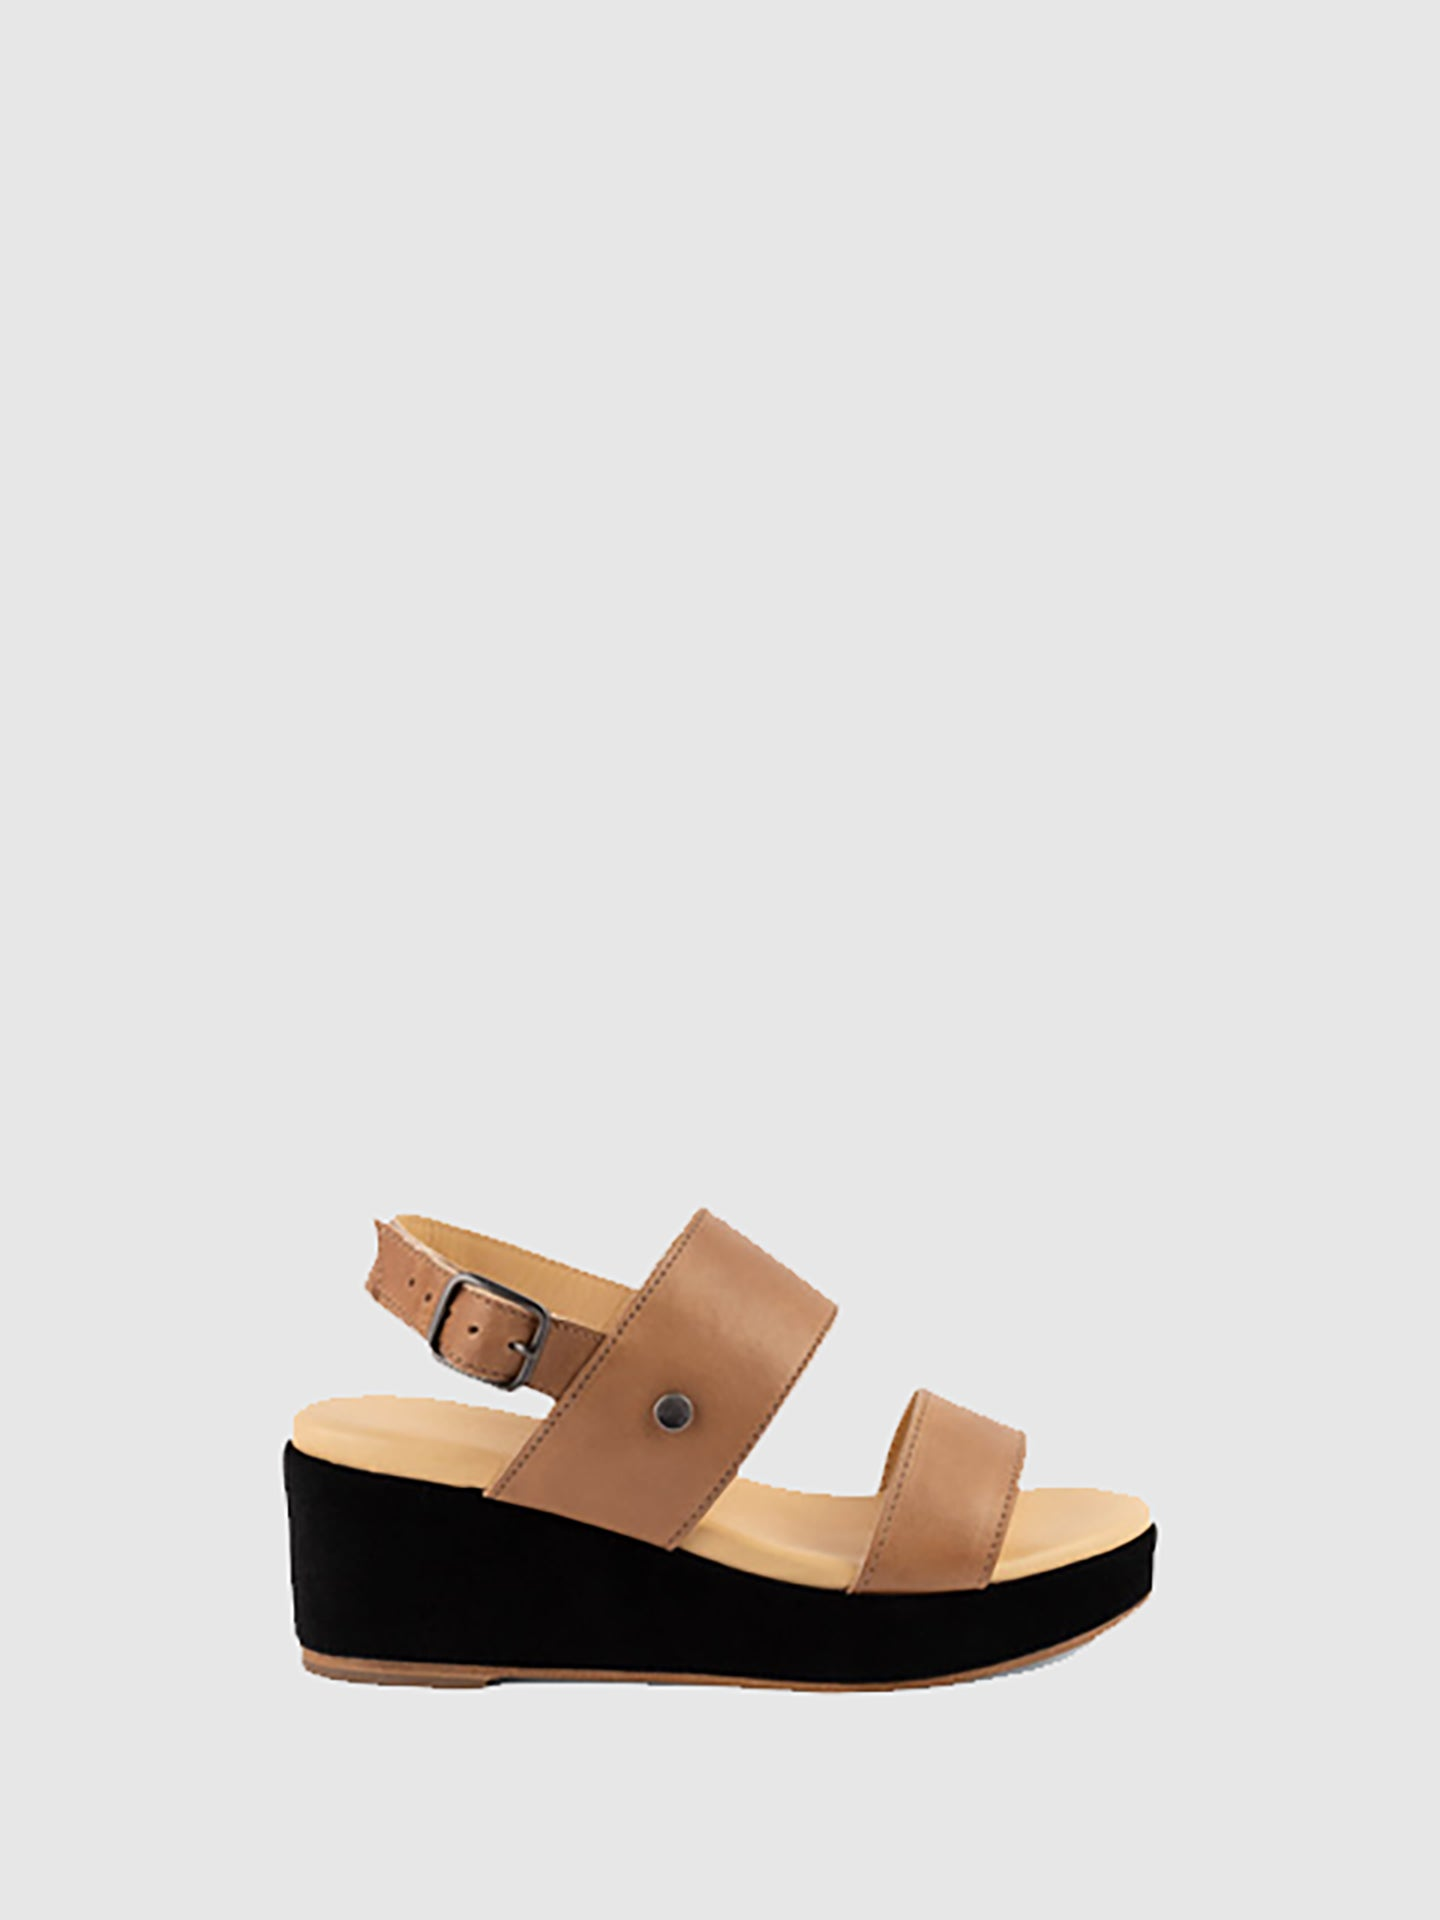 Only2me Beige Wedge Sandals